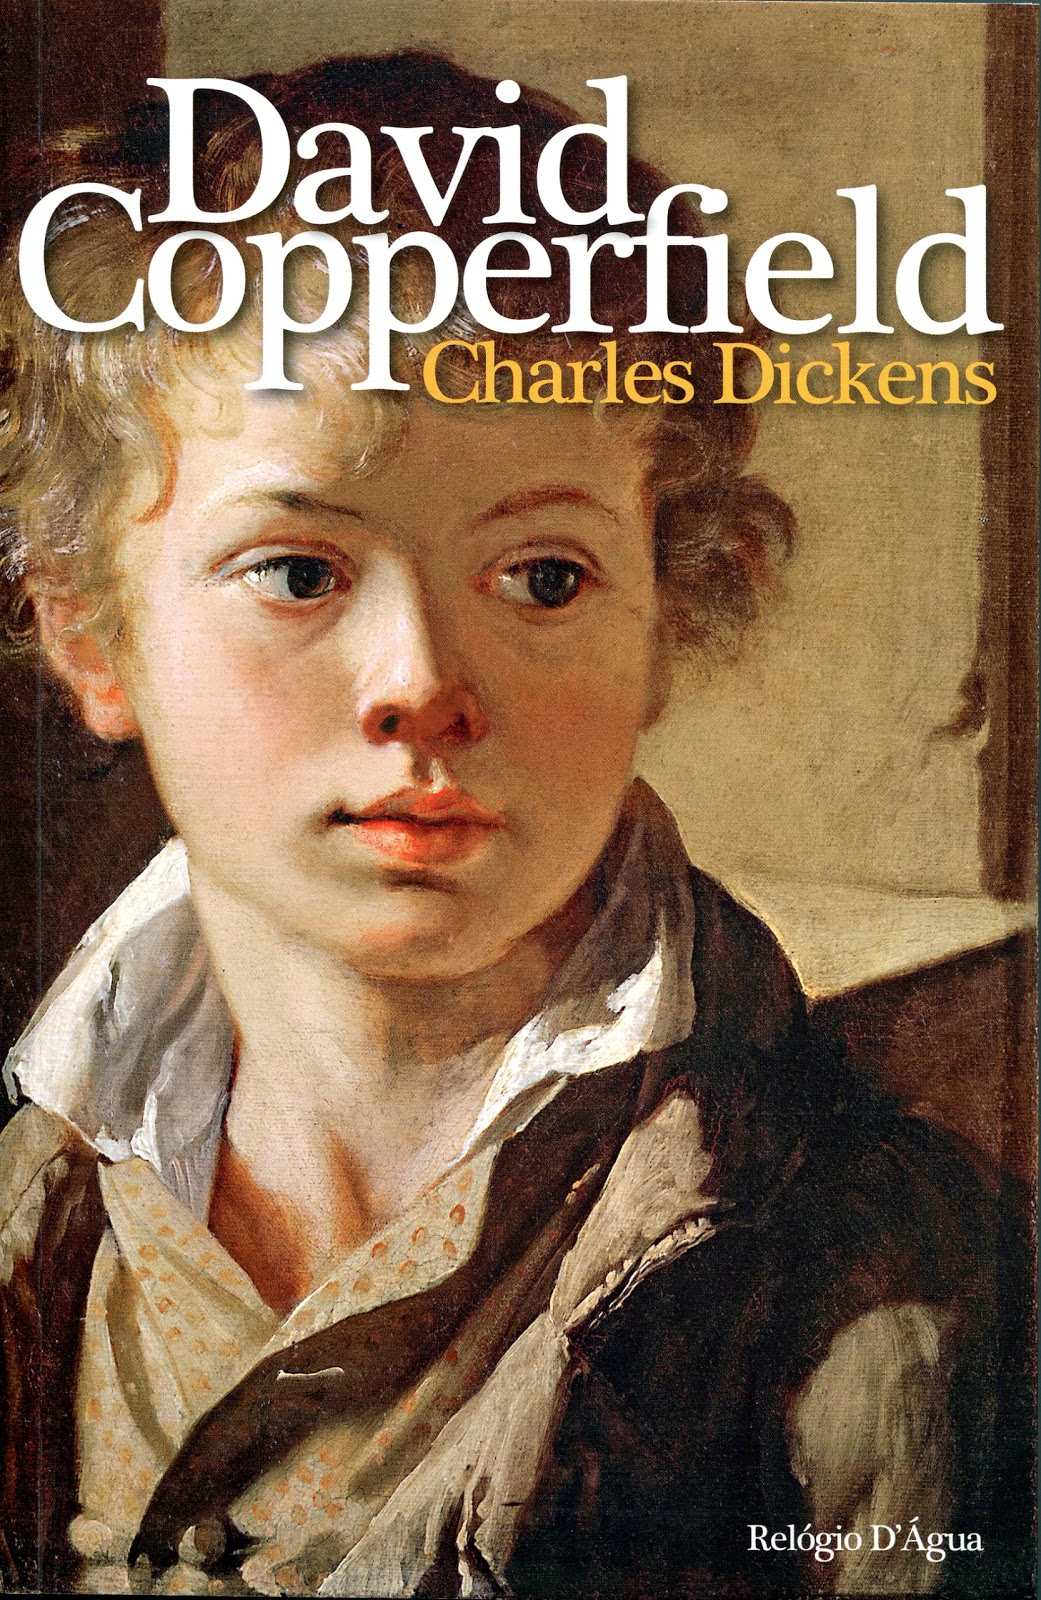 charles dickens david copperfield book report David copperfield is very good charles dickens unfortunately i was put off him when i was at school and had to read great expectations for an exam another thing with dickens books is i find i only start to get really drawn in somewhere between 100 - 200 pages in, i'd call them slow.